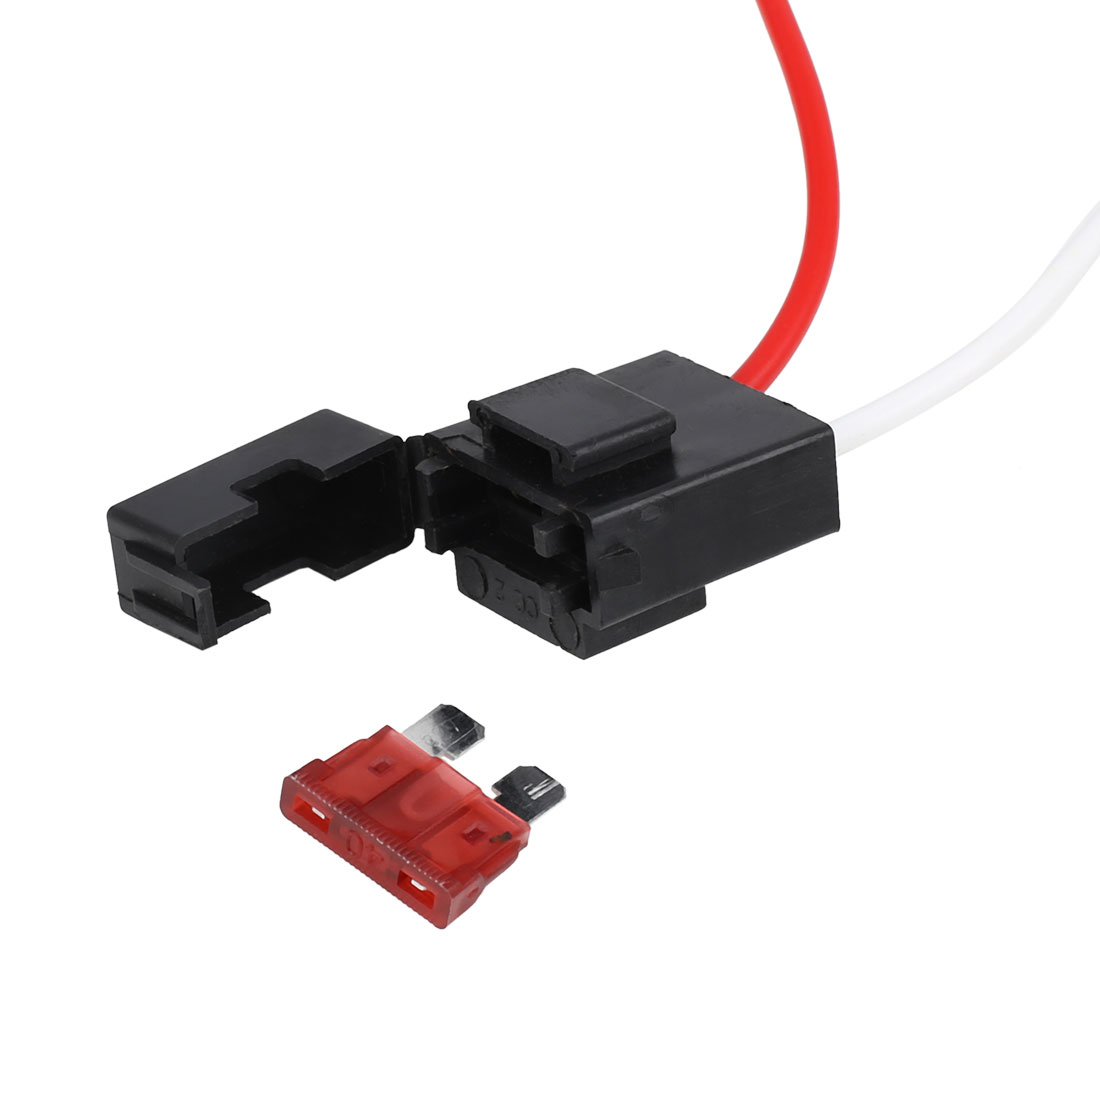 small resolution of dc 12v car truck grille mount blast tone speaker wiring harness easy wiring harness kit car